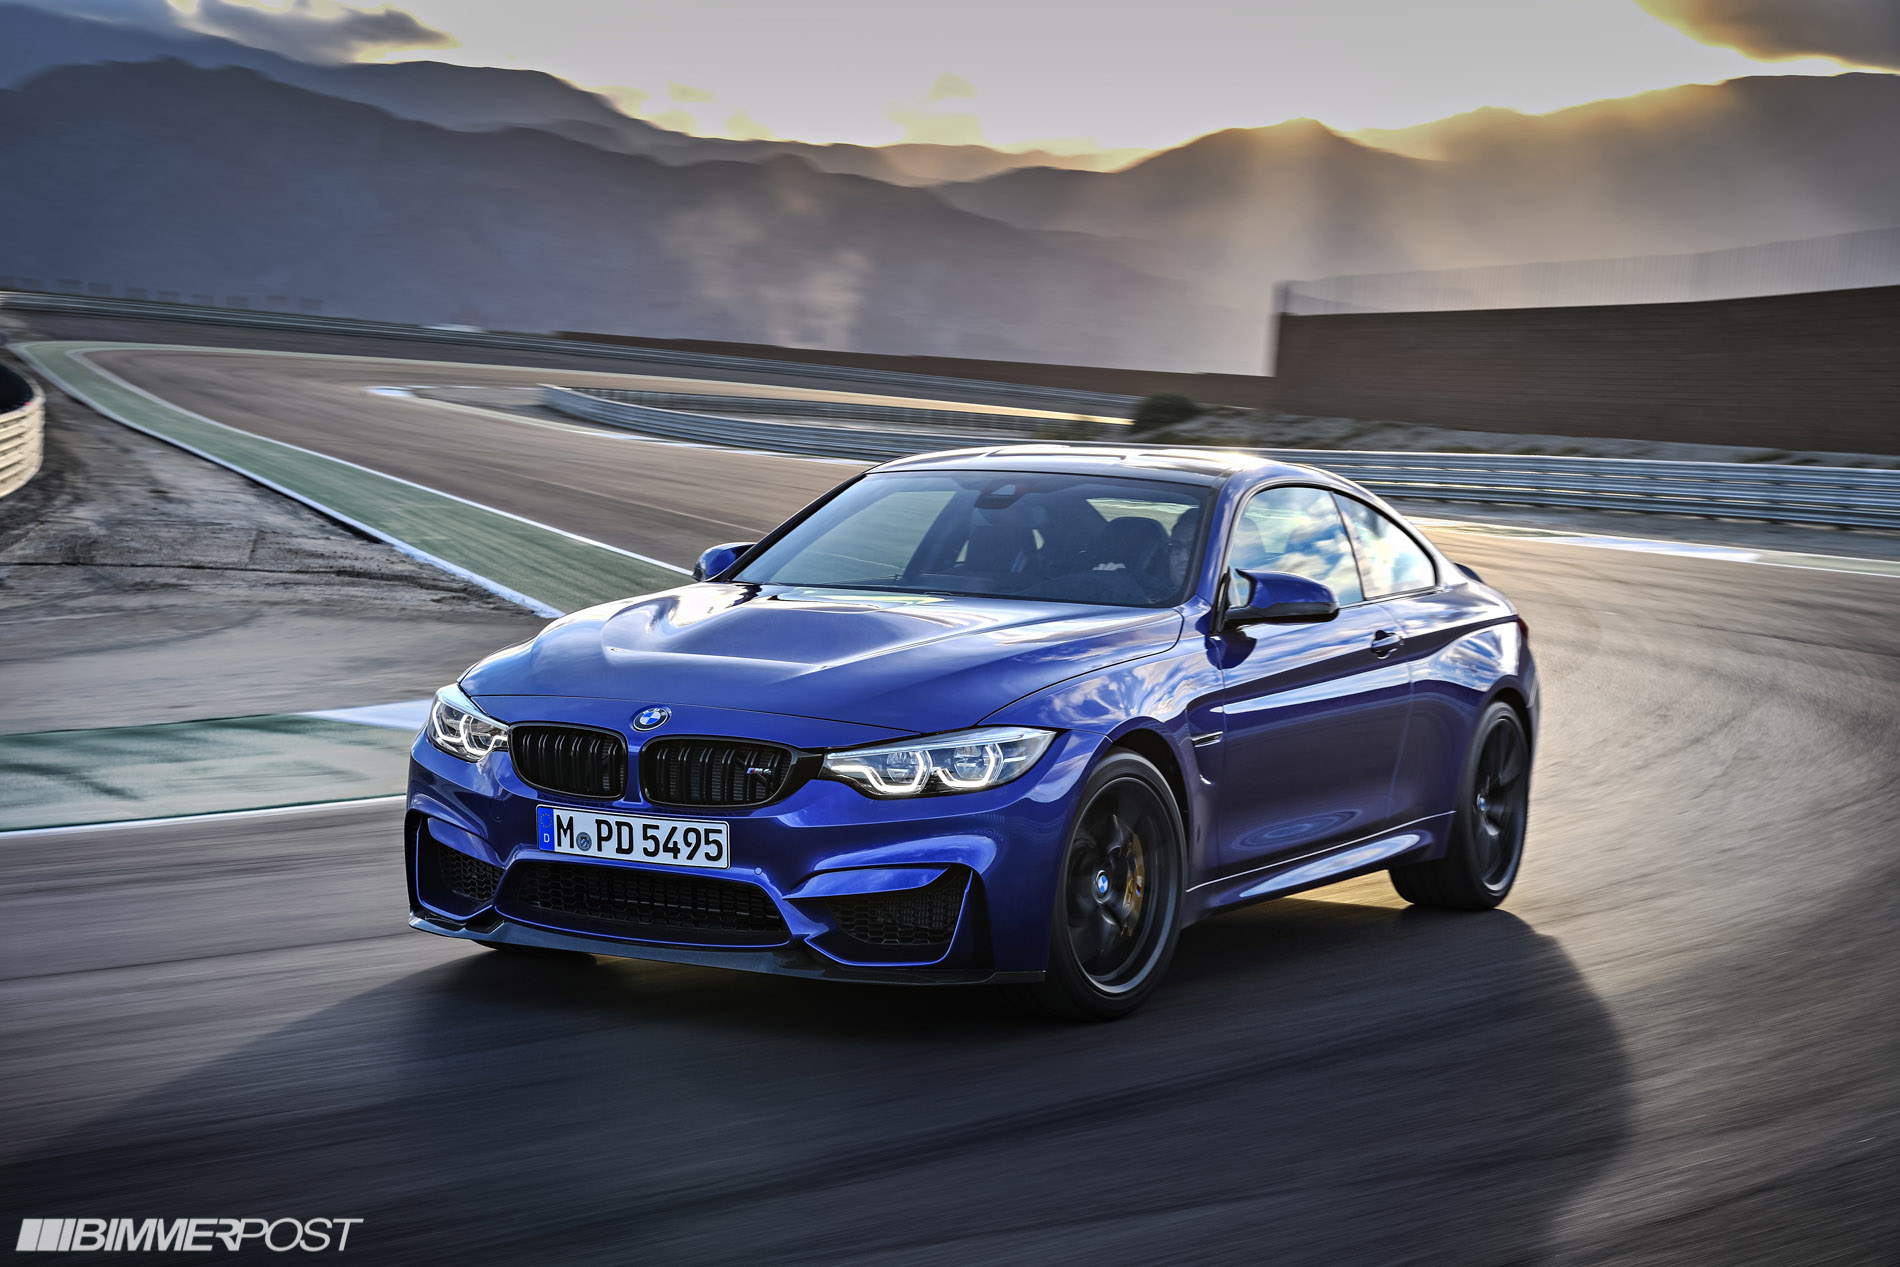 Introducing The First Ever Bmw M4 Cs Bmw M3 And Bmw M4 Forum